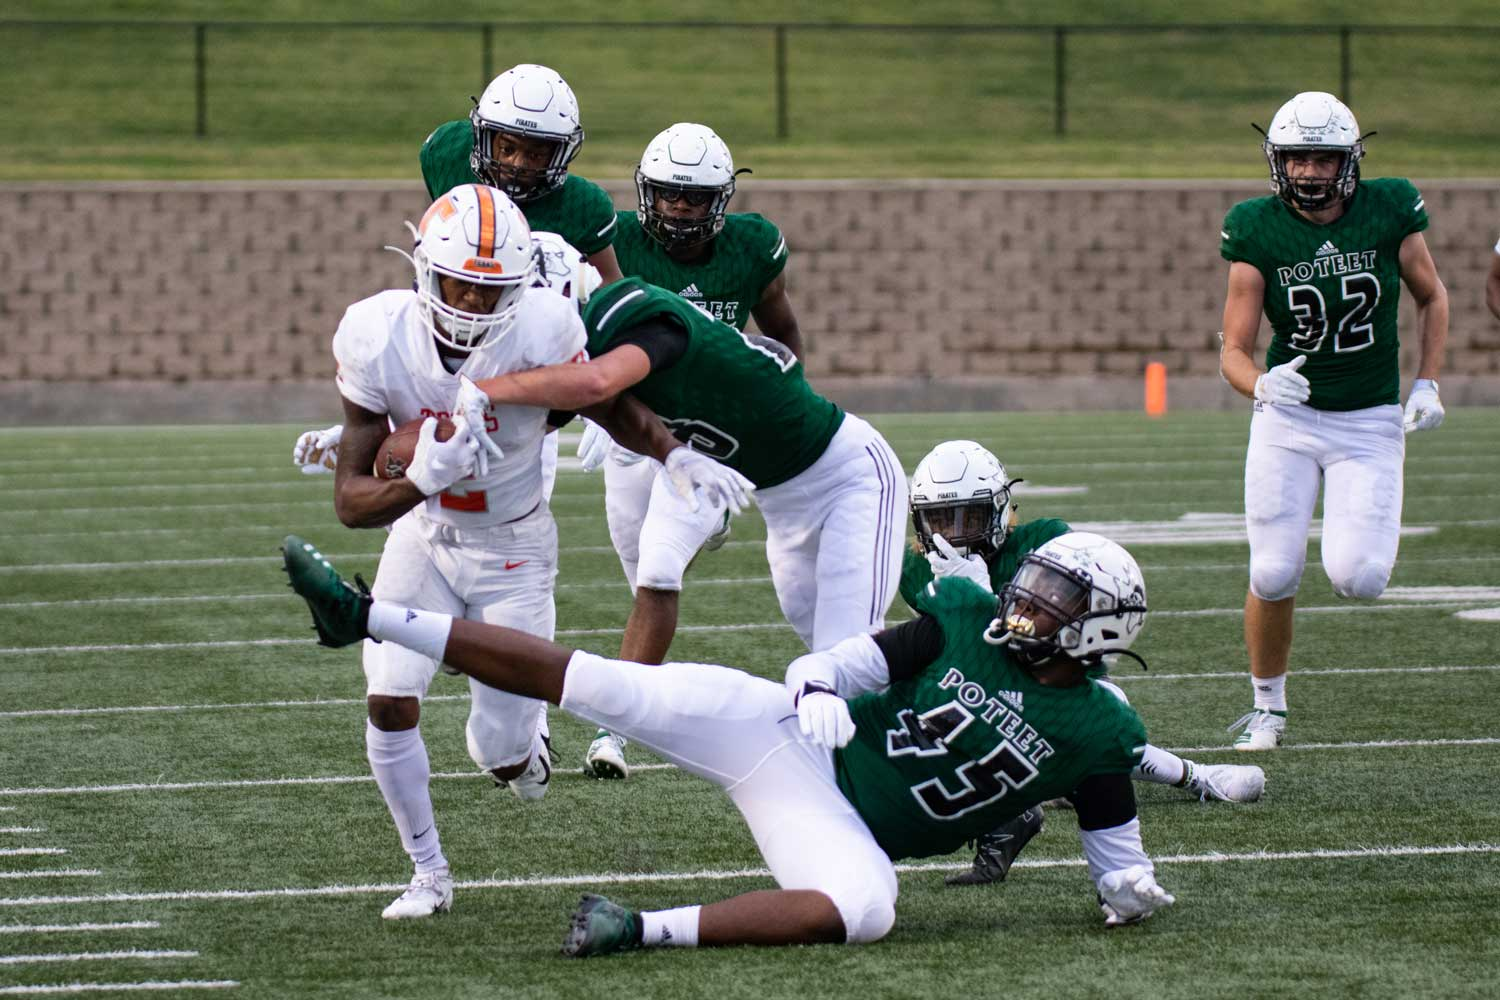 Tracy Cooper rushes against Mesquite Poteet defense on Oct. 11, 2019. The Tigers lost to the Pirates with a score of 10-55 to remain winless in district play.